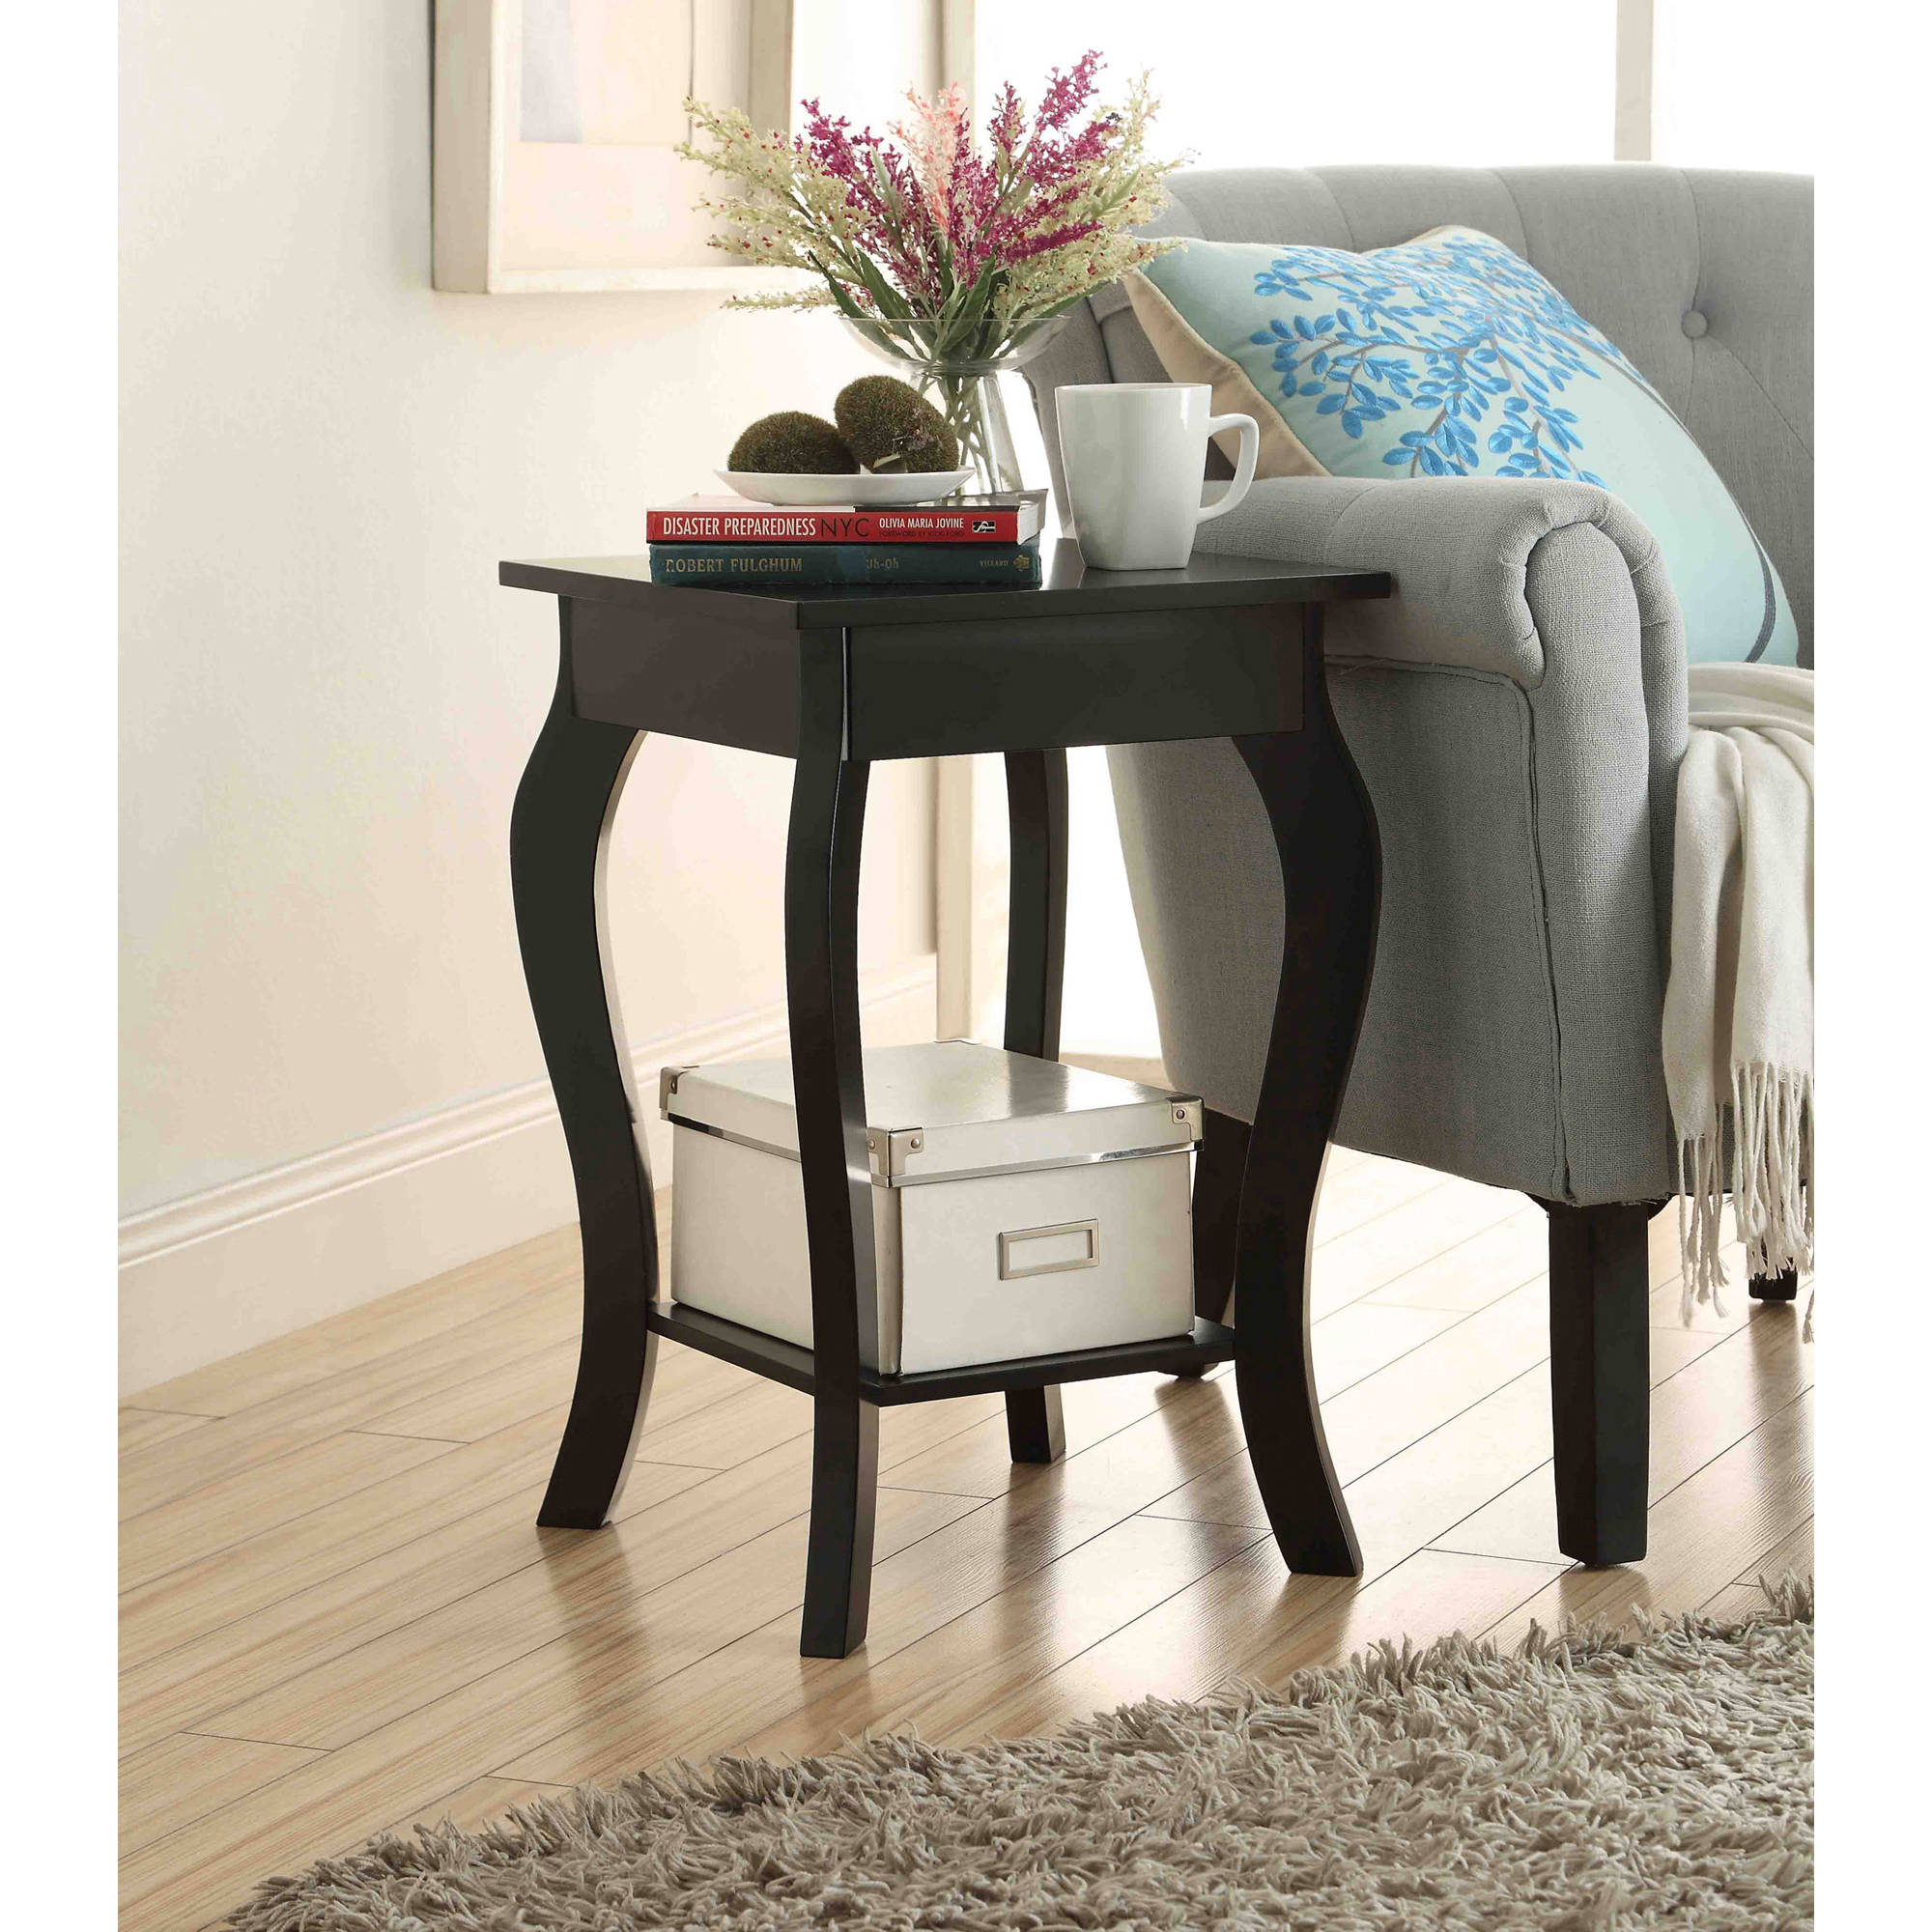 invalid category base accent table target high end designer lamps trestle entry sun chairs bunnings lucite night blue porcelain lamp rope west elm ott thin coffee simple sofa top